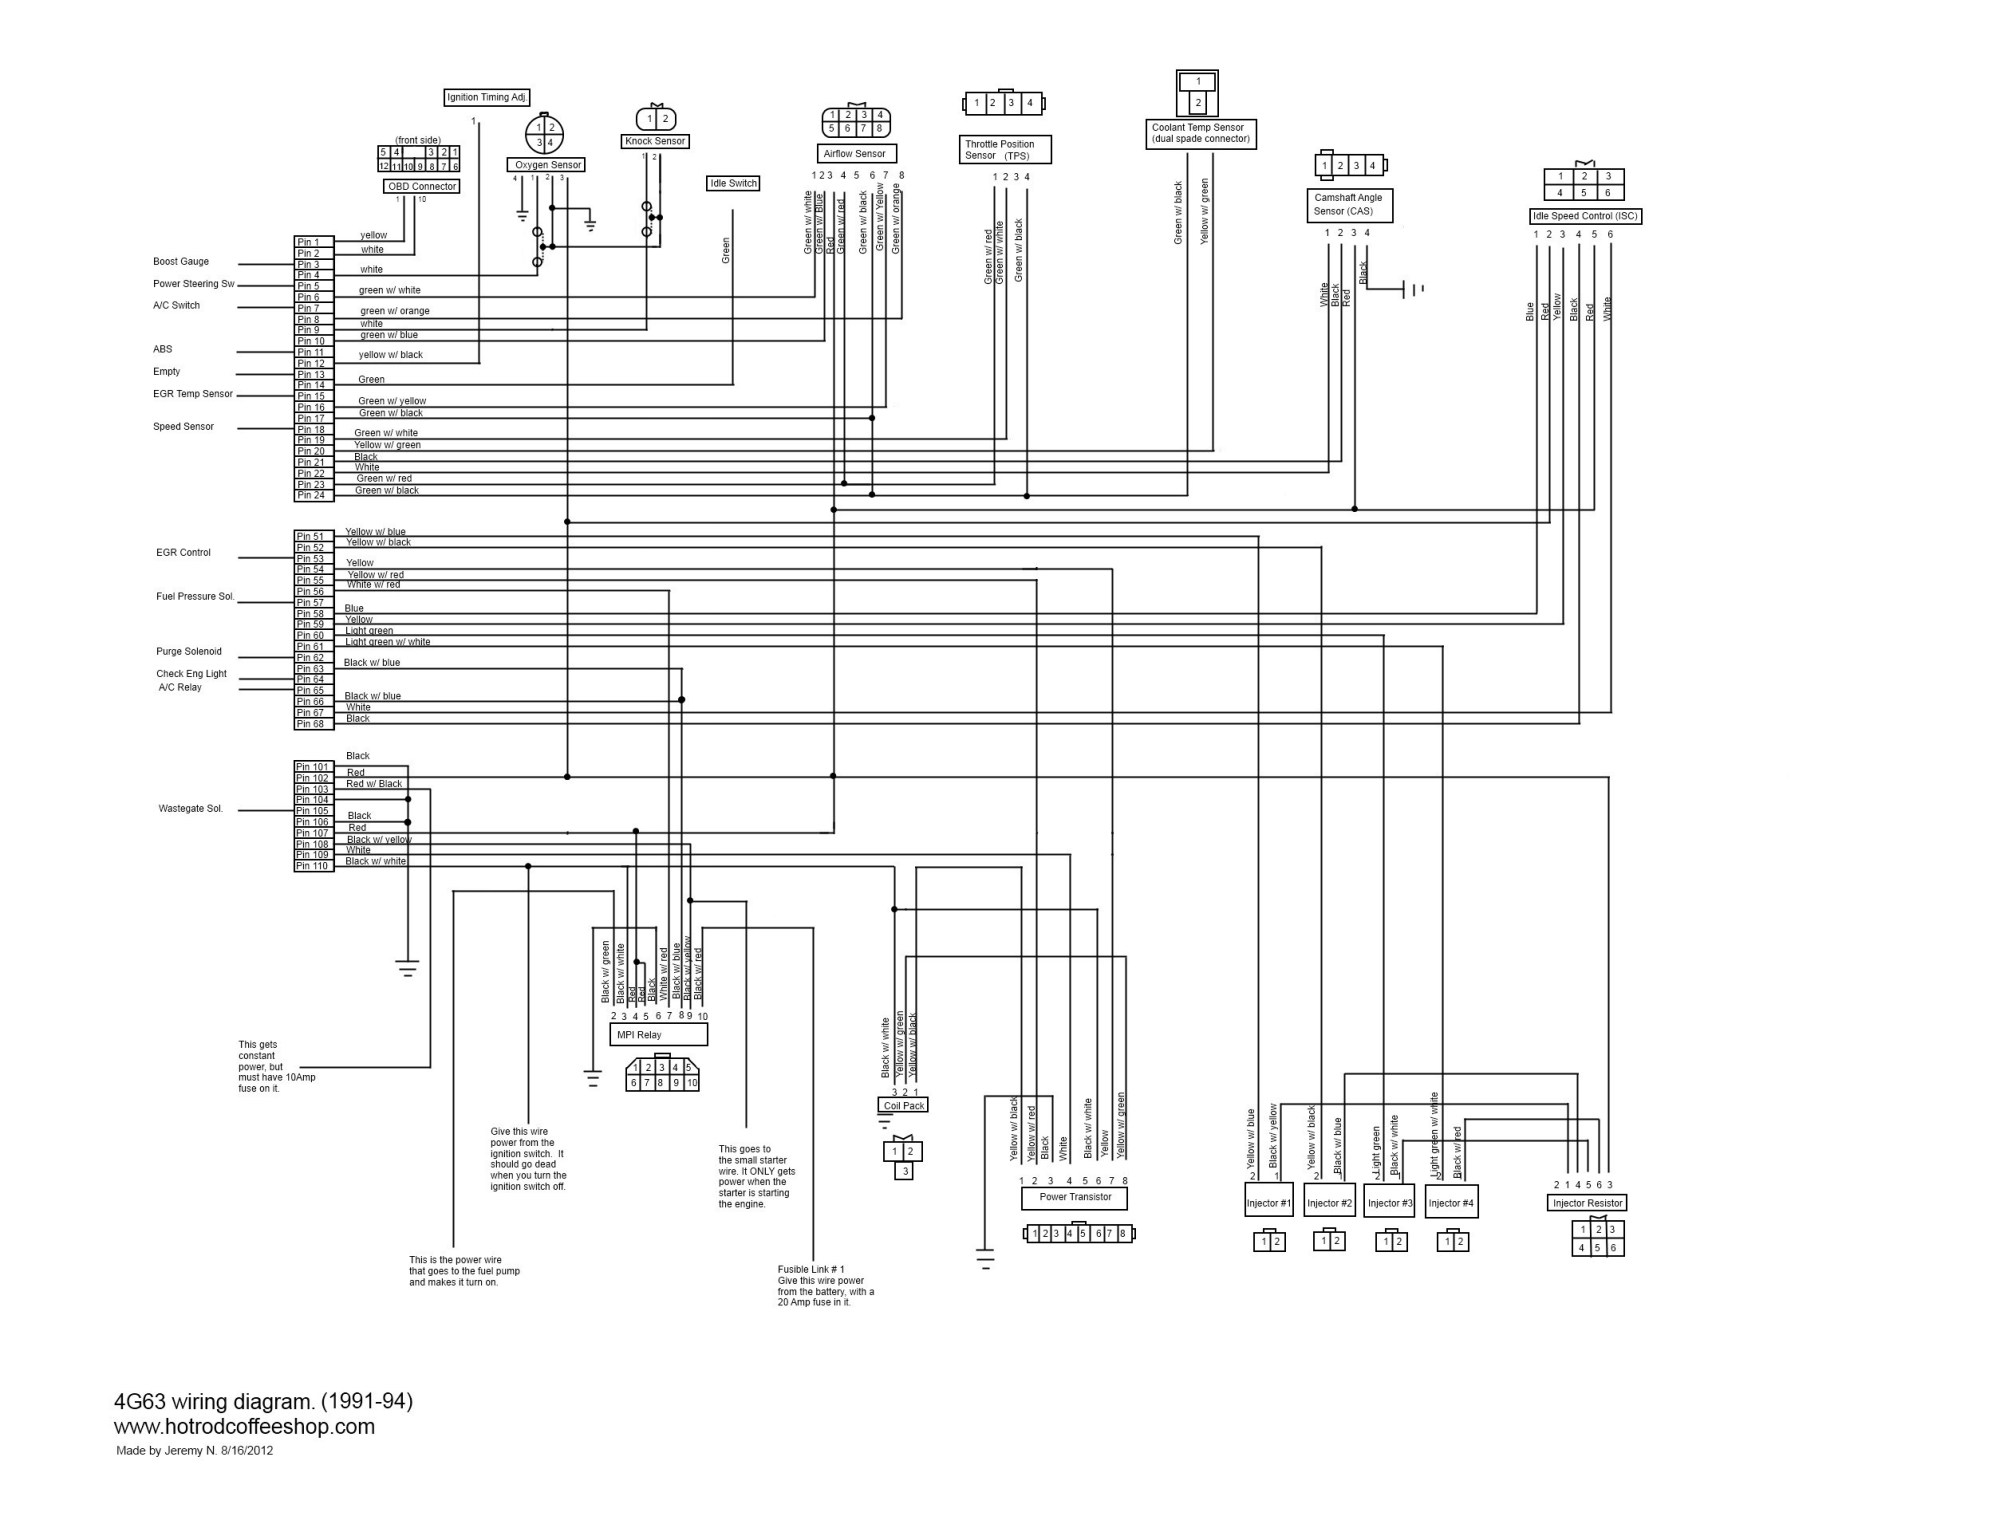 hight resolution of 2002 mitsubishi galant engine 2 4 diagram wiring diagram toolbox 2003 mitsubishi eclipse engine diagram